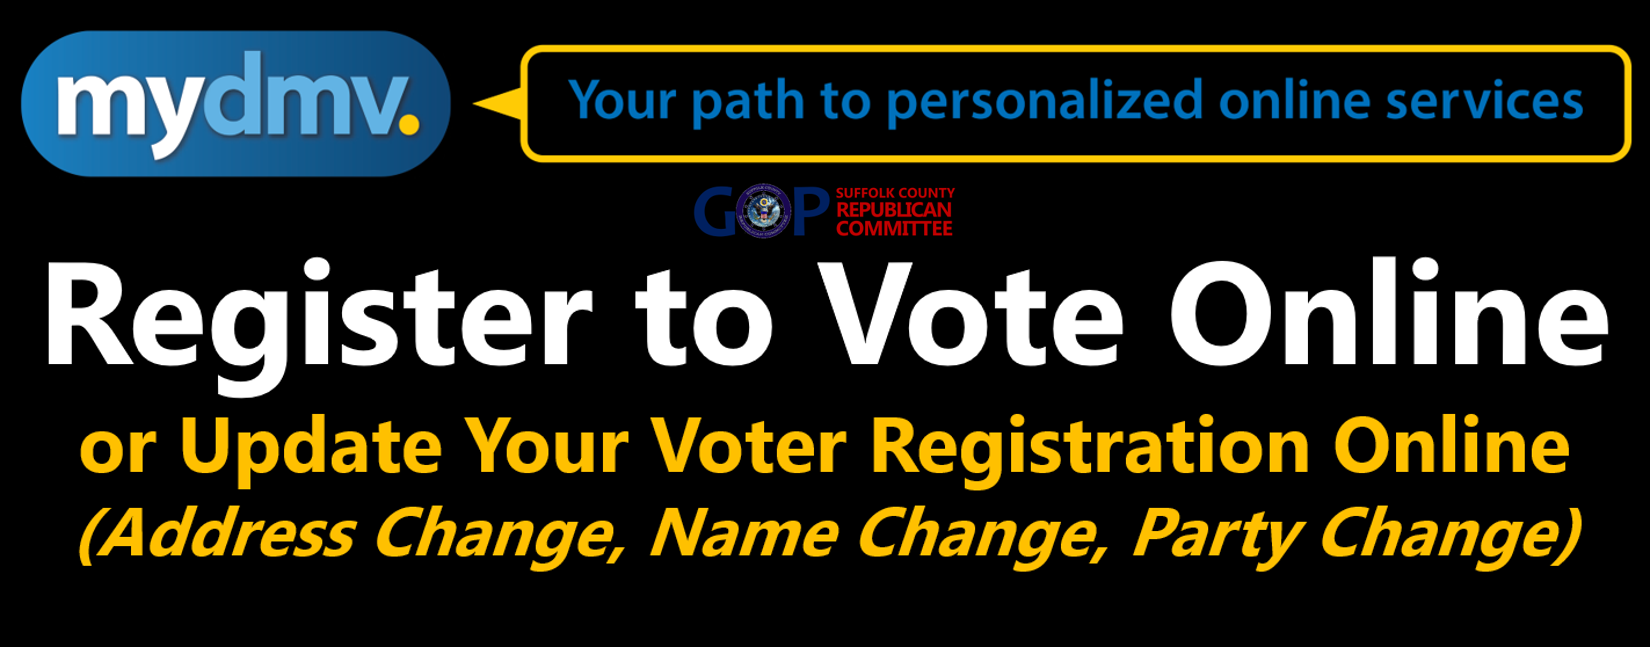 Register to Vote/Update Your Voter Registration Online